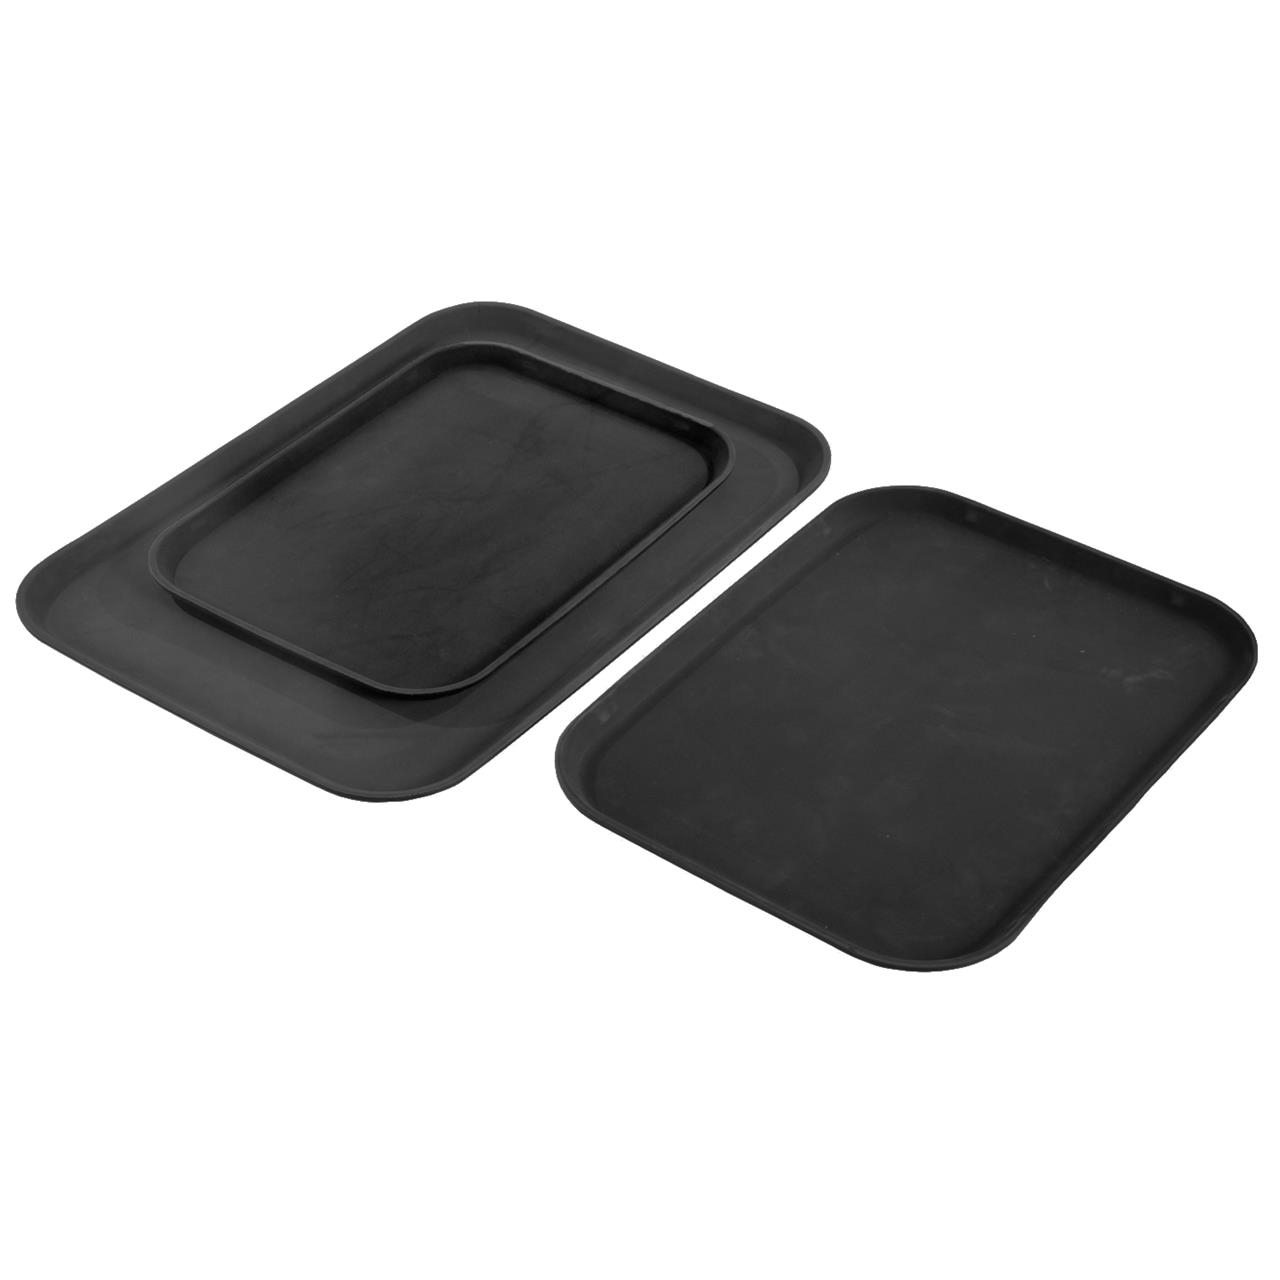 Rectangular Non-Slip Drink Tray